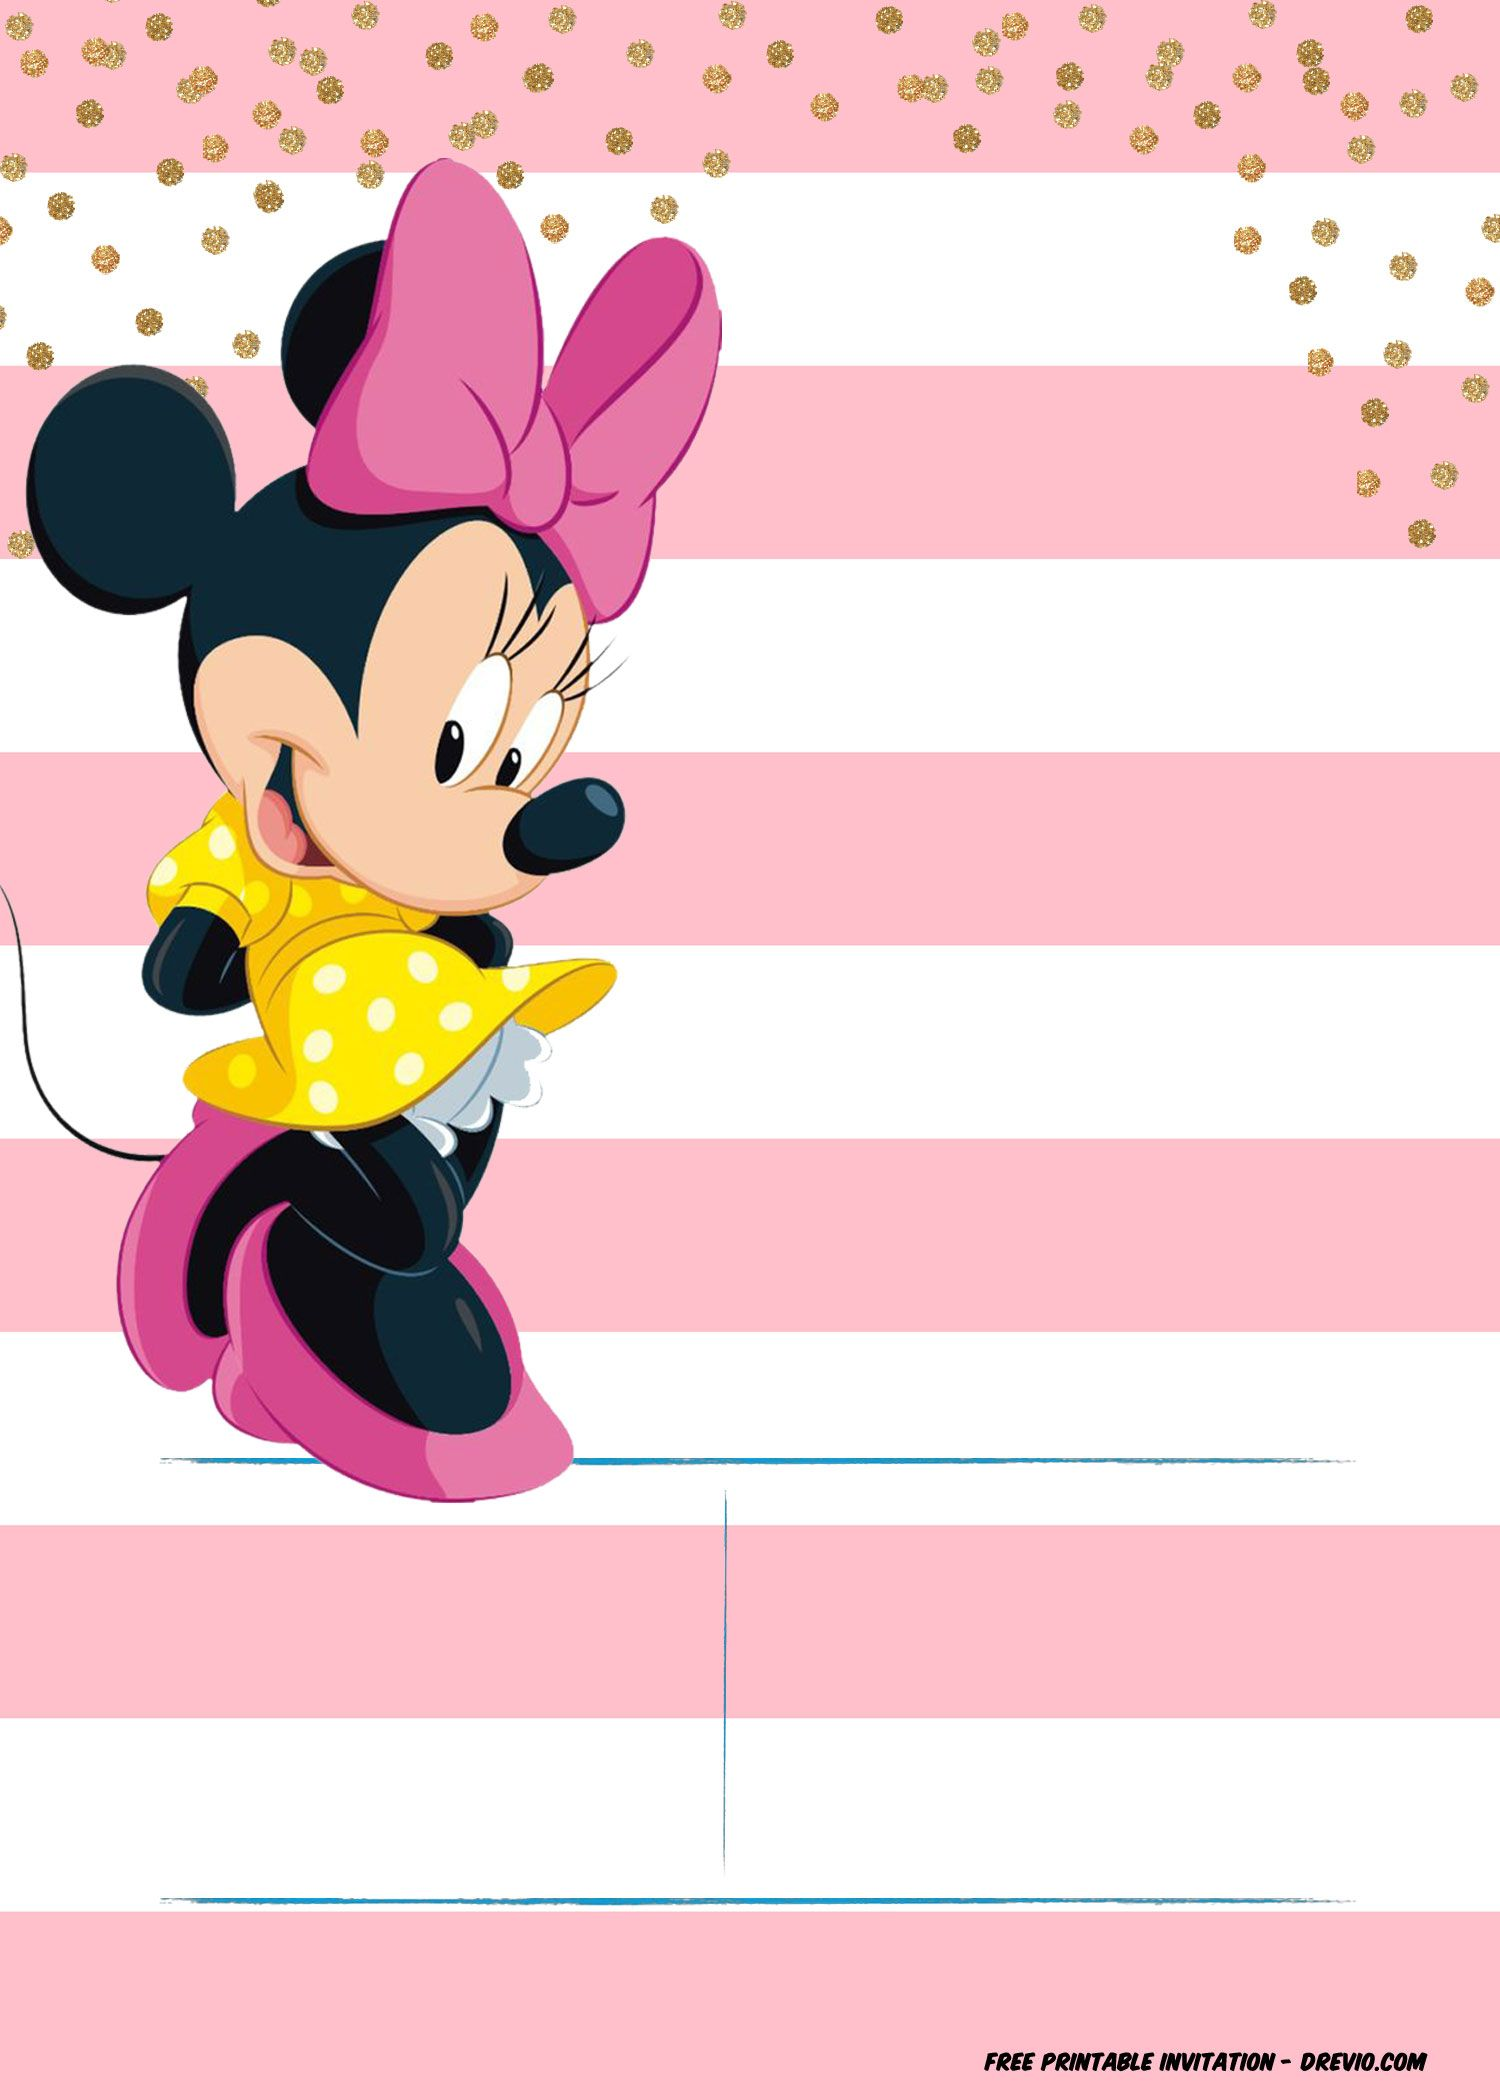 Minnie Mouse Invitation Template Editable and FREE